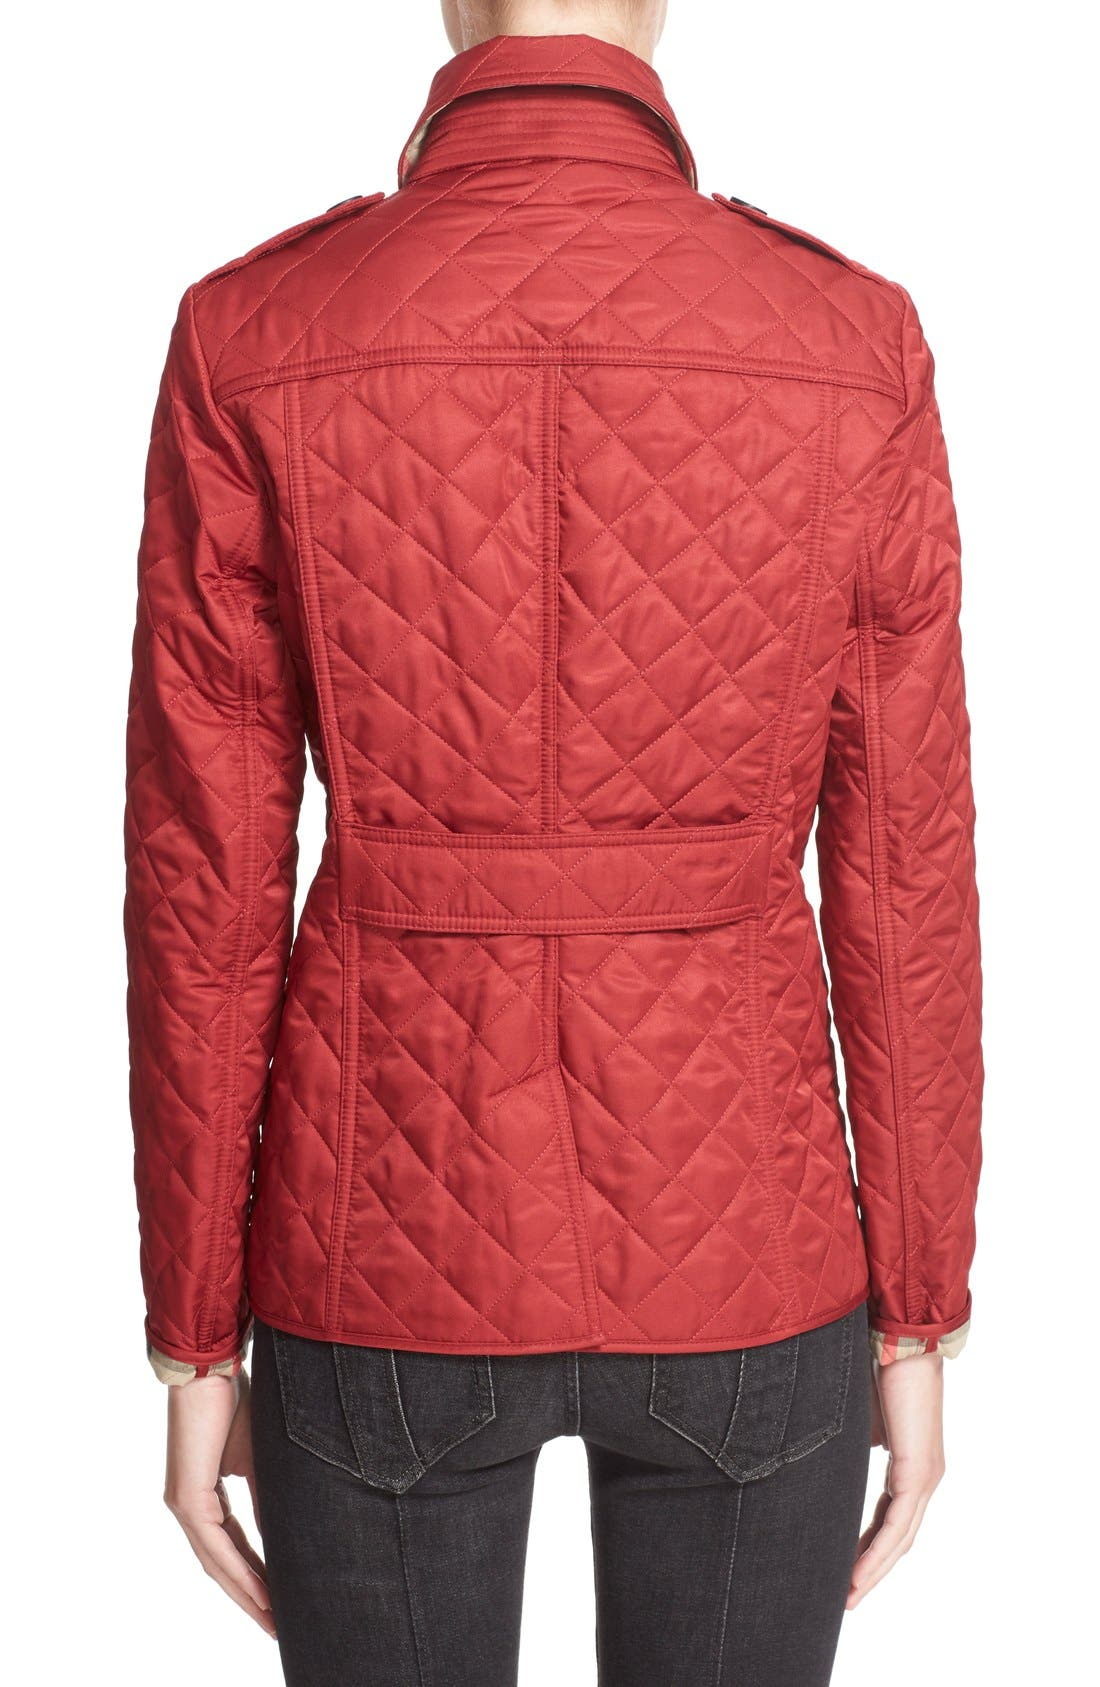 s fashion fb jacket burberry prorsum page our menswear quilt mens pin like quilted